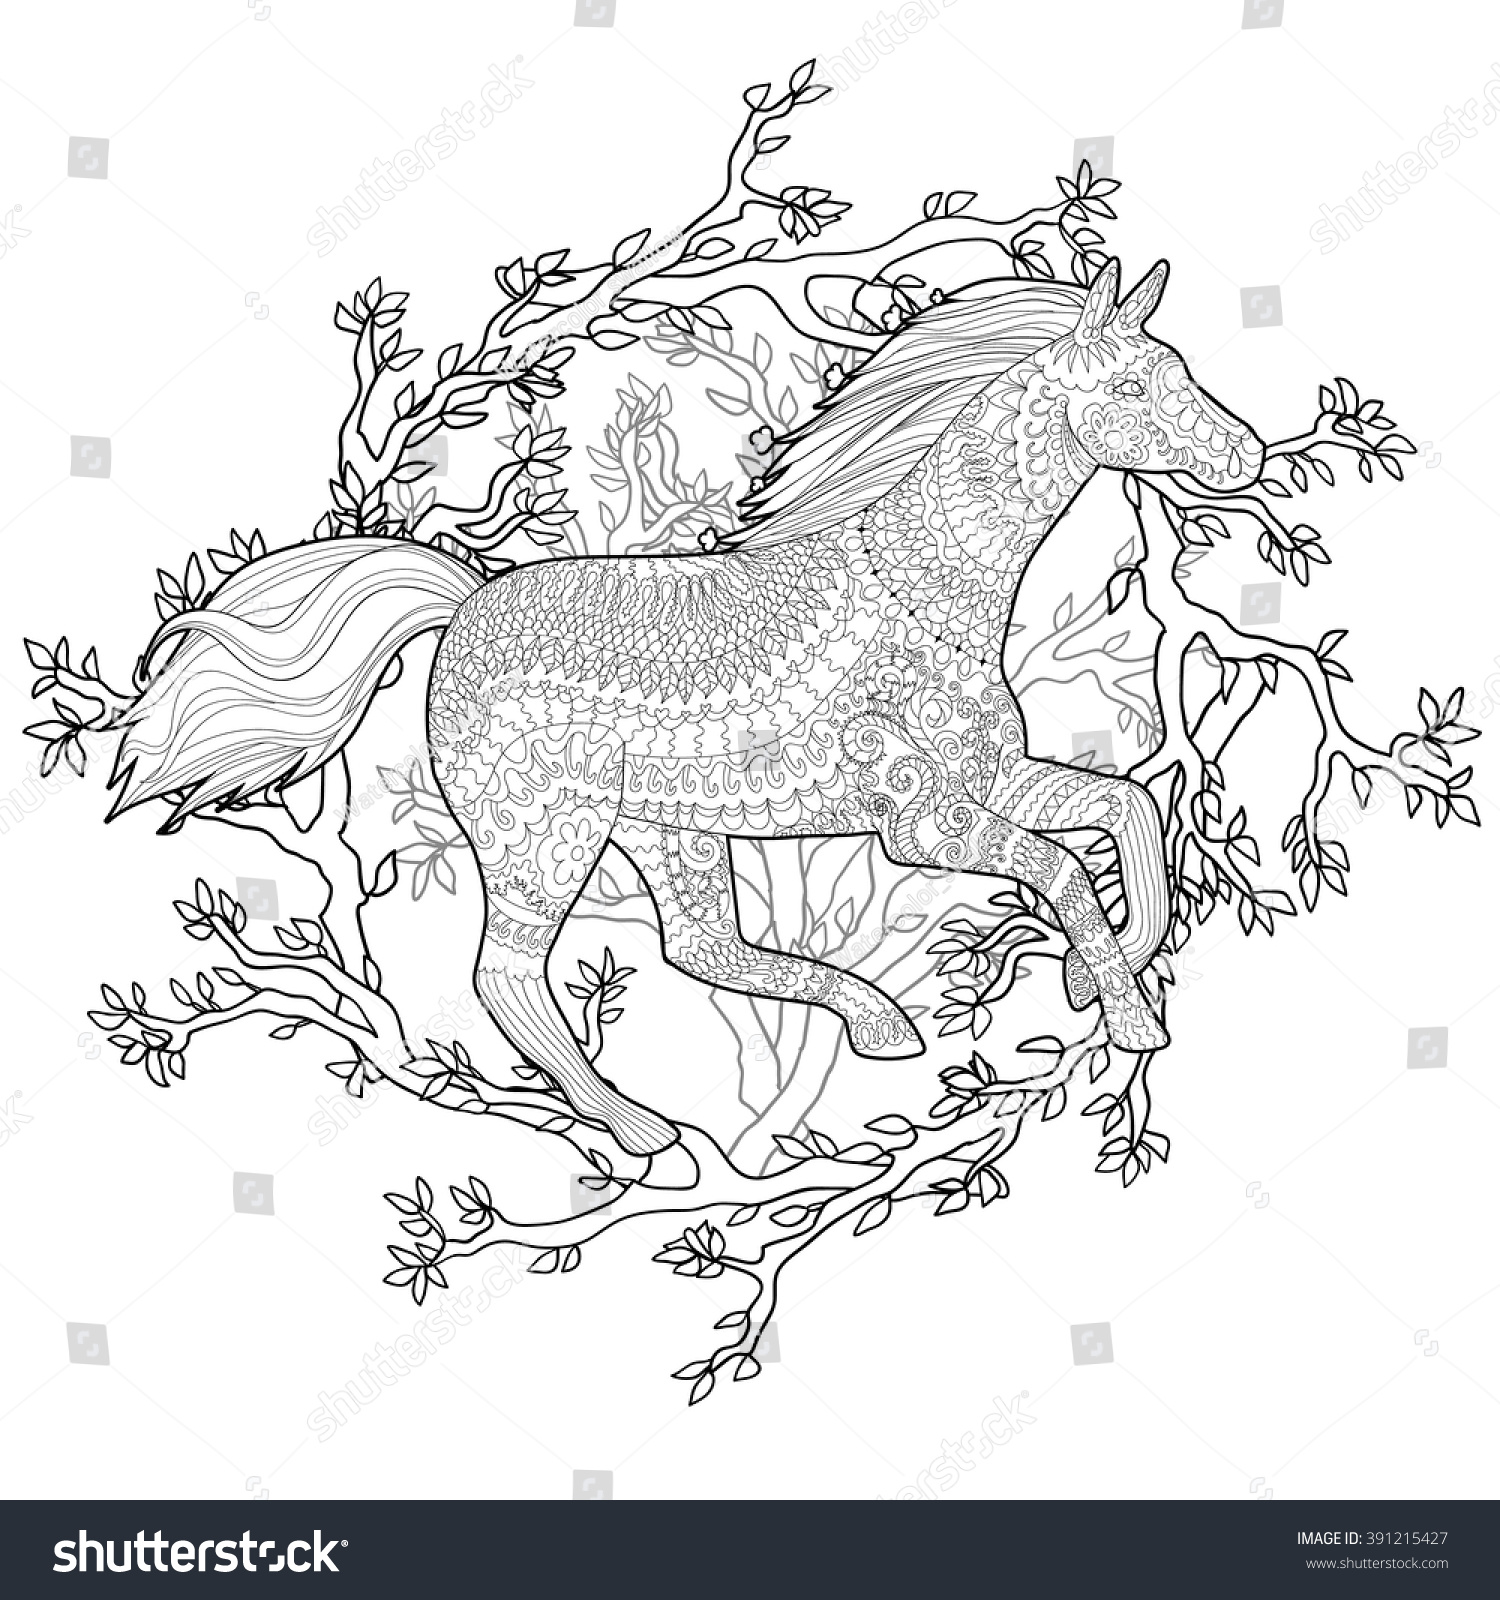 art therapy coloring pages - adult coloring page antistress art therapy stock vector